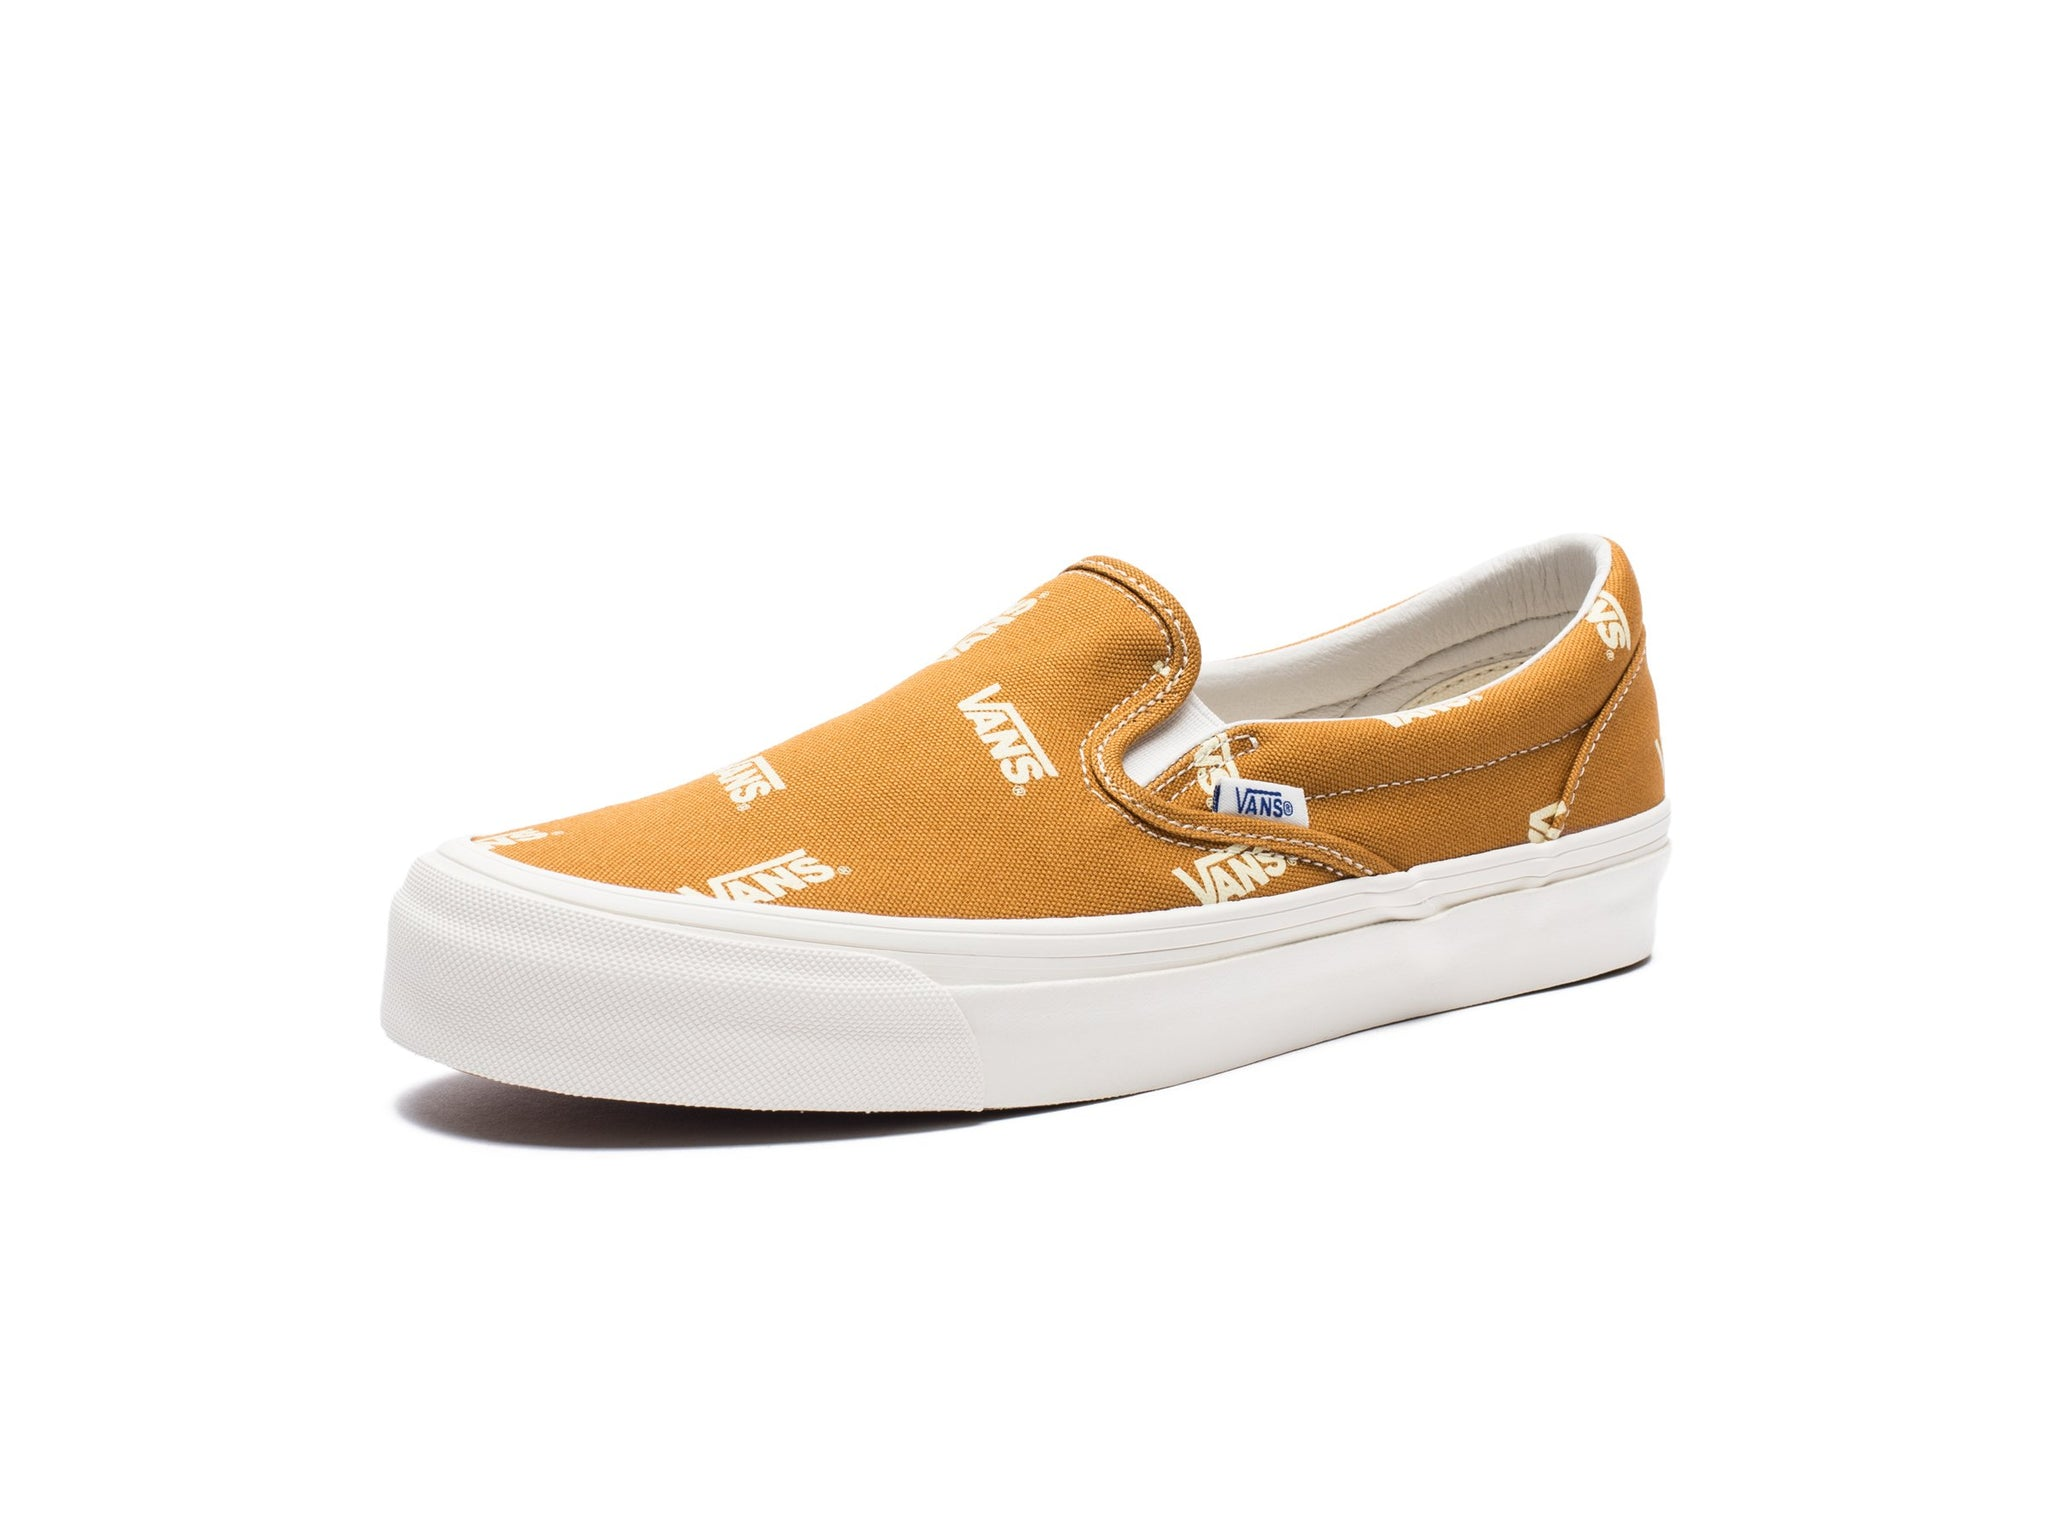 OG CLASSIC SLIP-ON (CANVAS) - BUCKTHORNBROWN